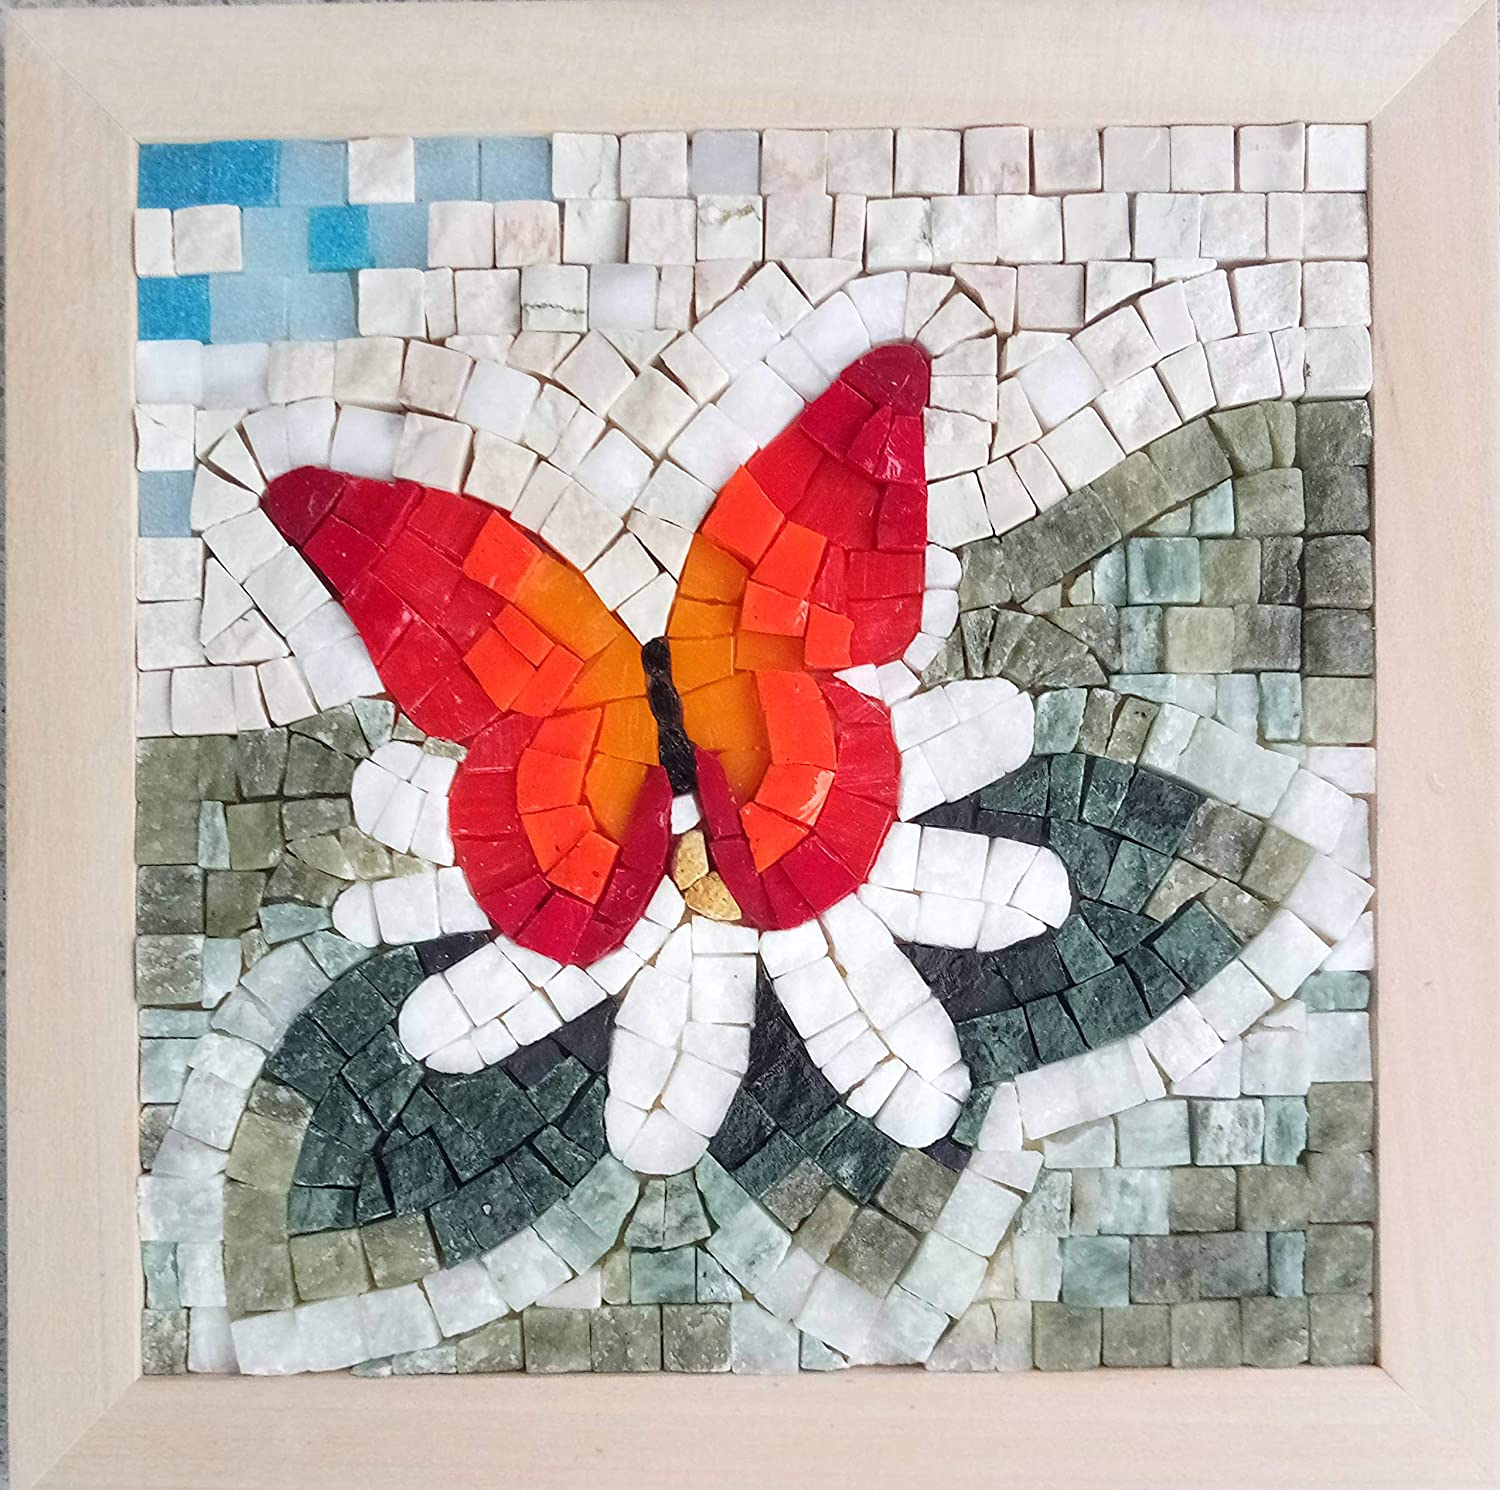 Make Your Own Mosaic Diy Art Kit Spring Arts And Crafts For Adults